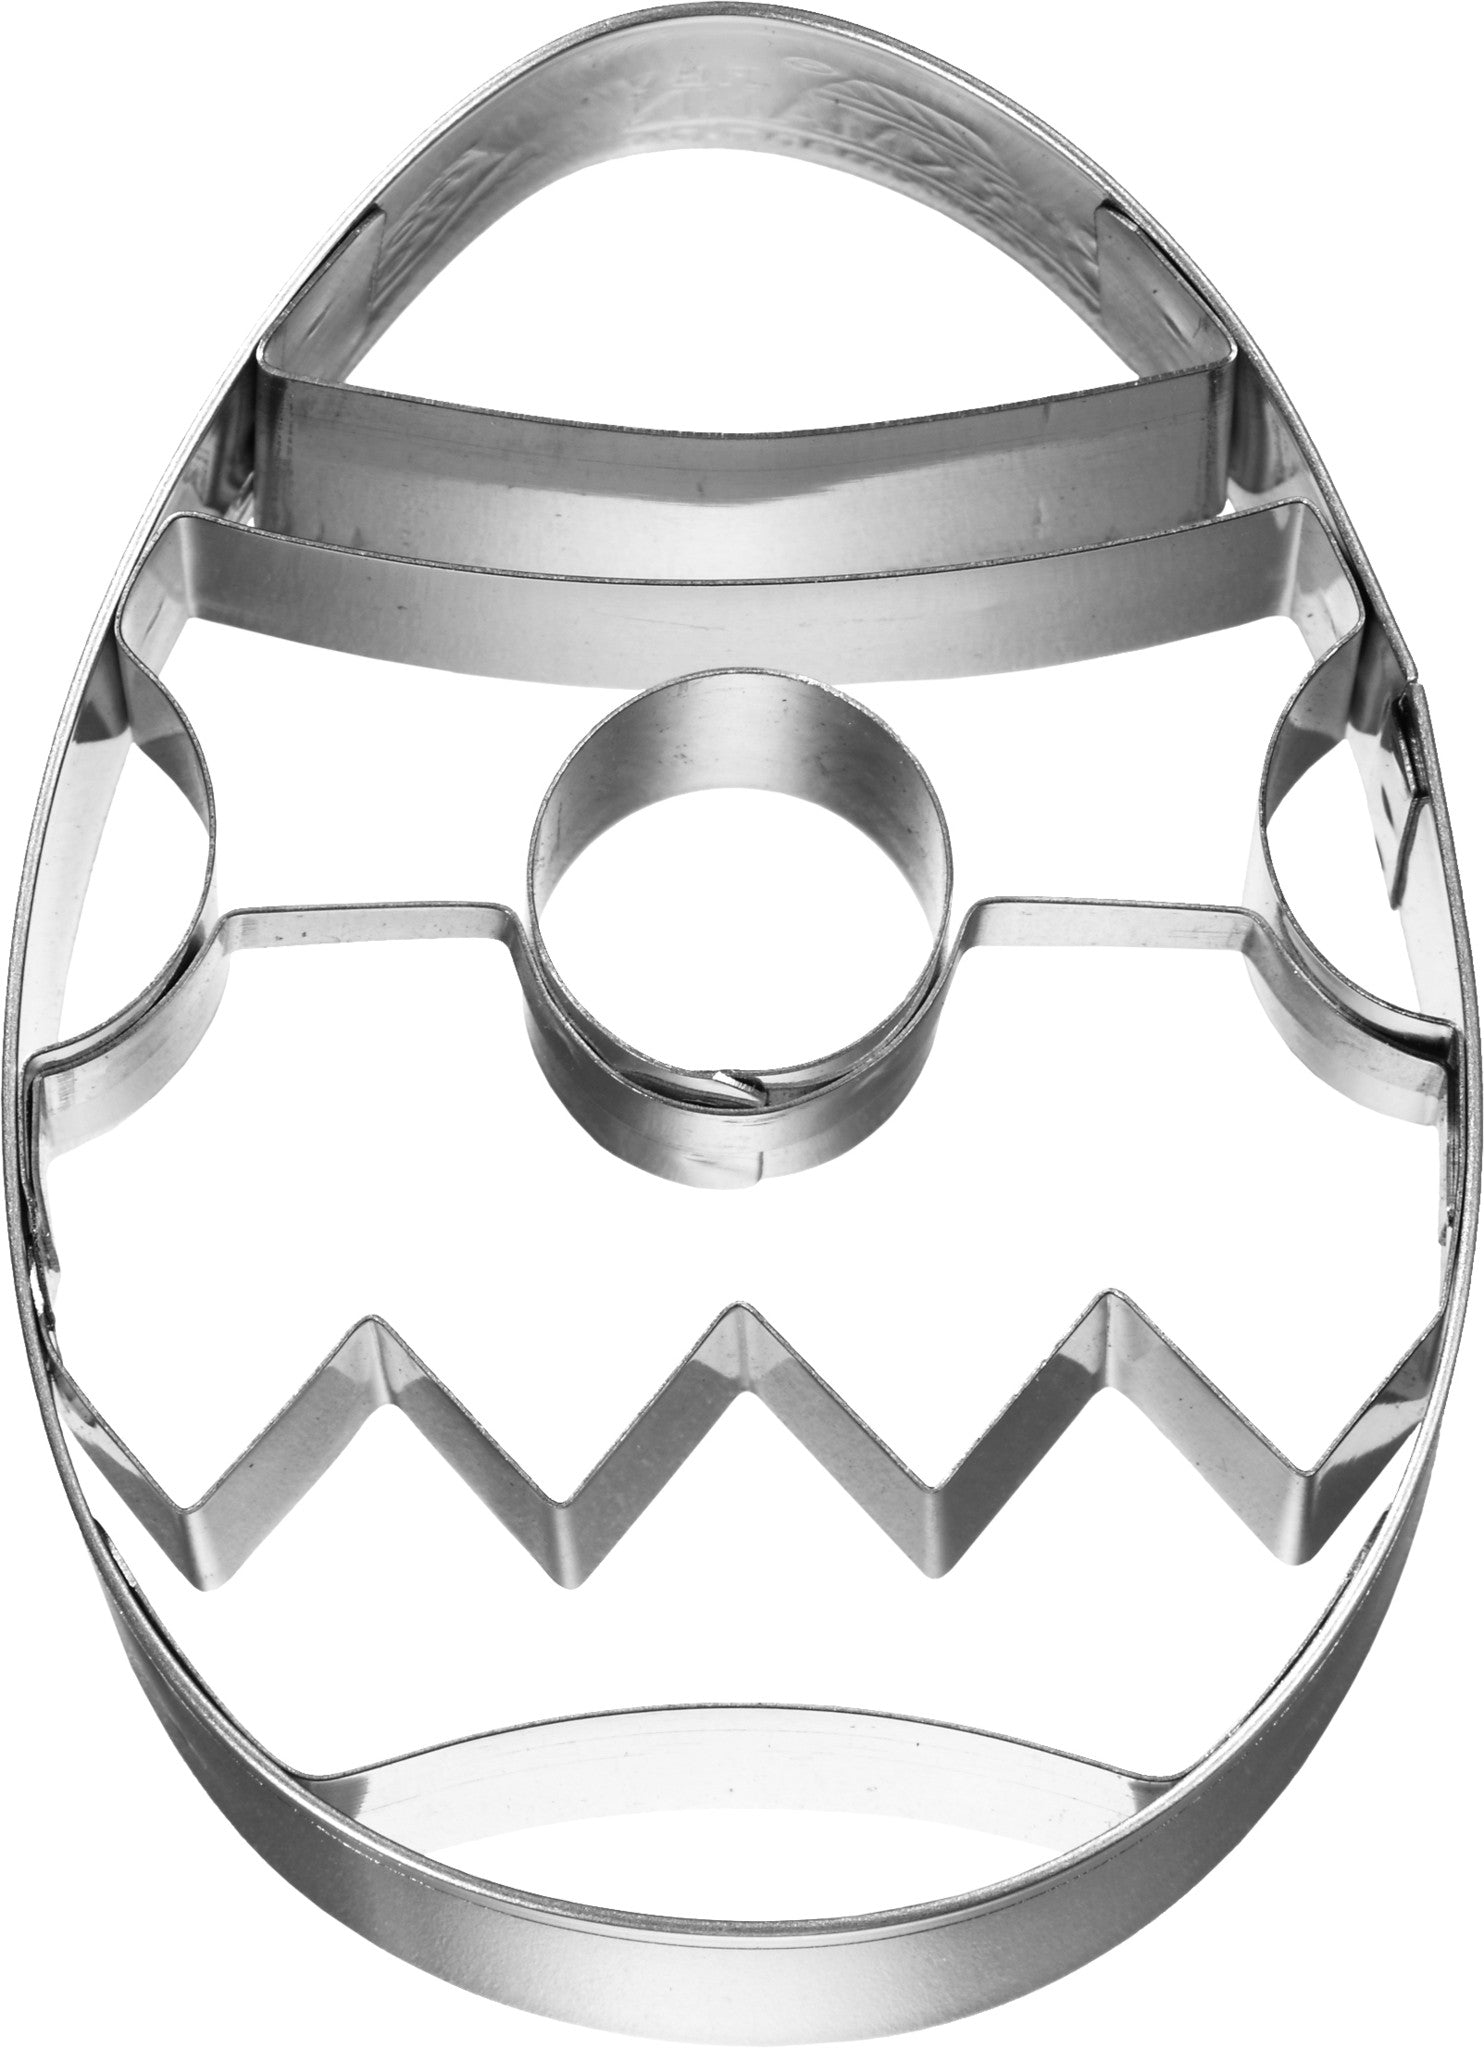 Easter Egg 8cm With Internal Detail 2 Cookie Cutter-Cookie Cutter Shop Australia